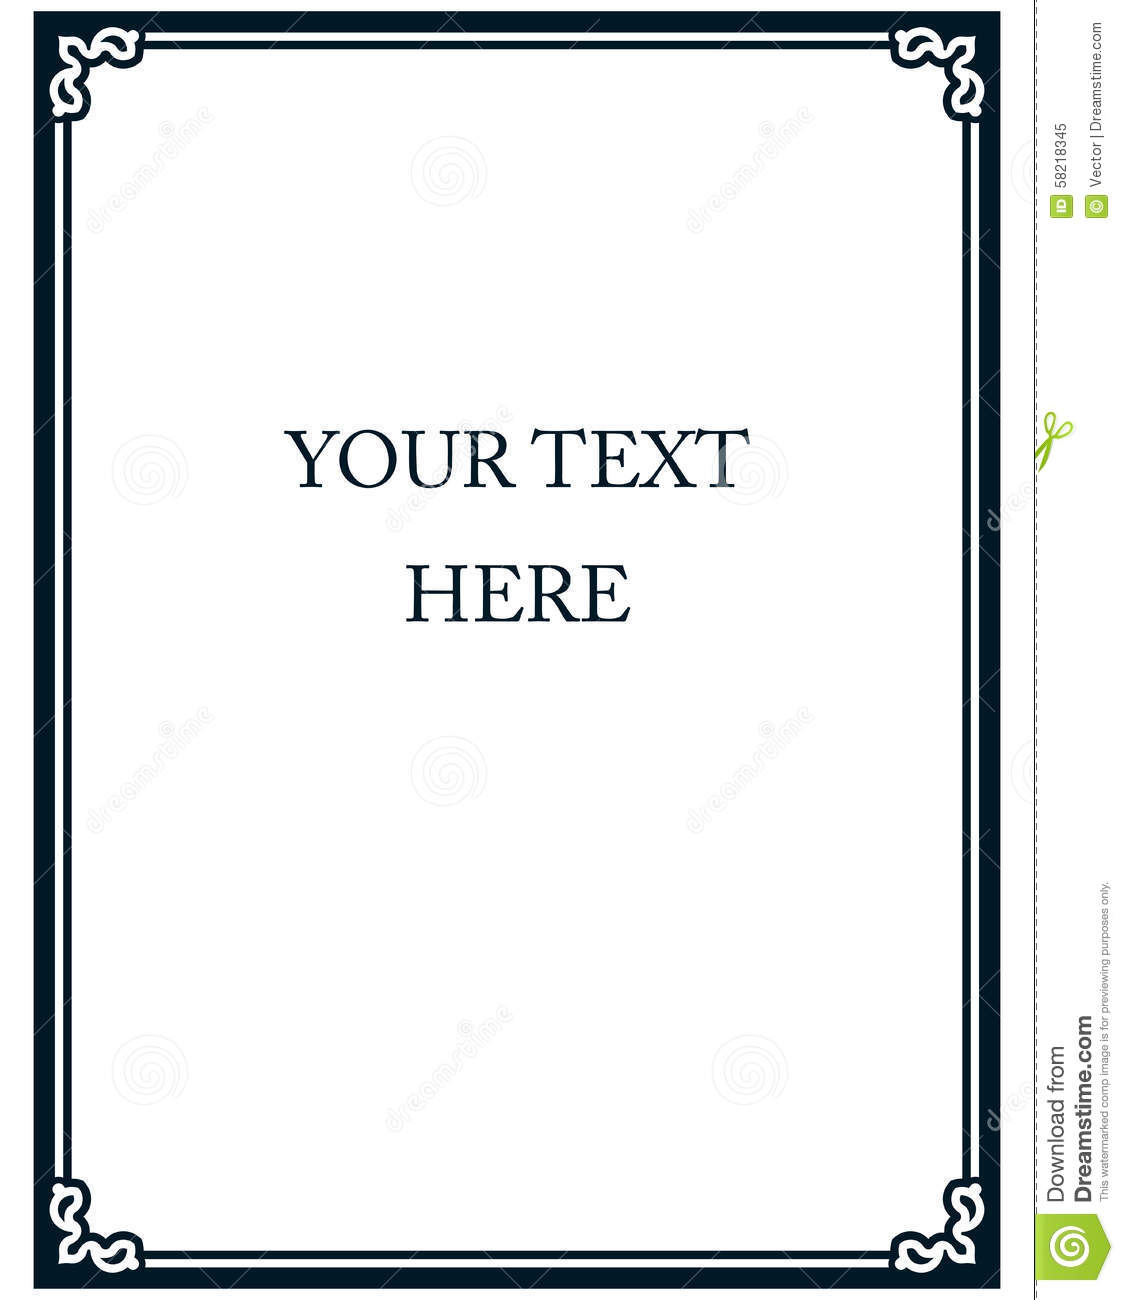 Simple Vector Line Border Frame Isolated Illustration Stock Vector ...